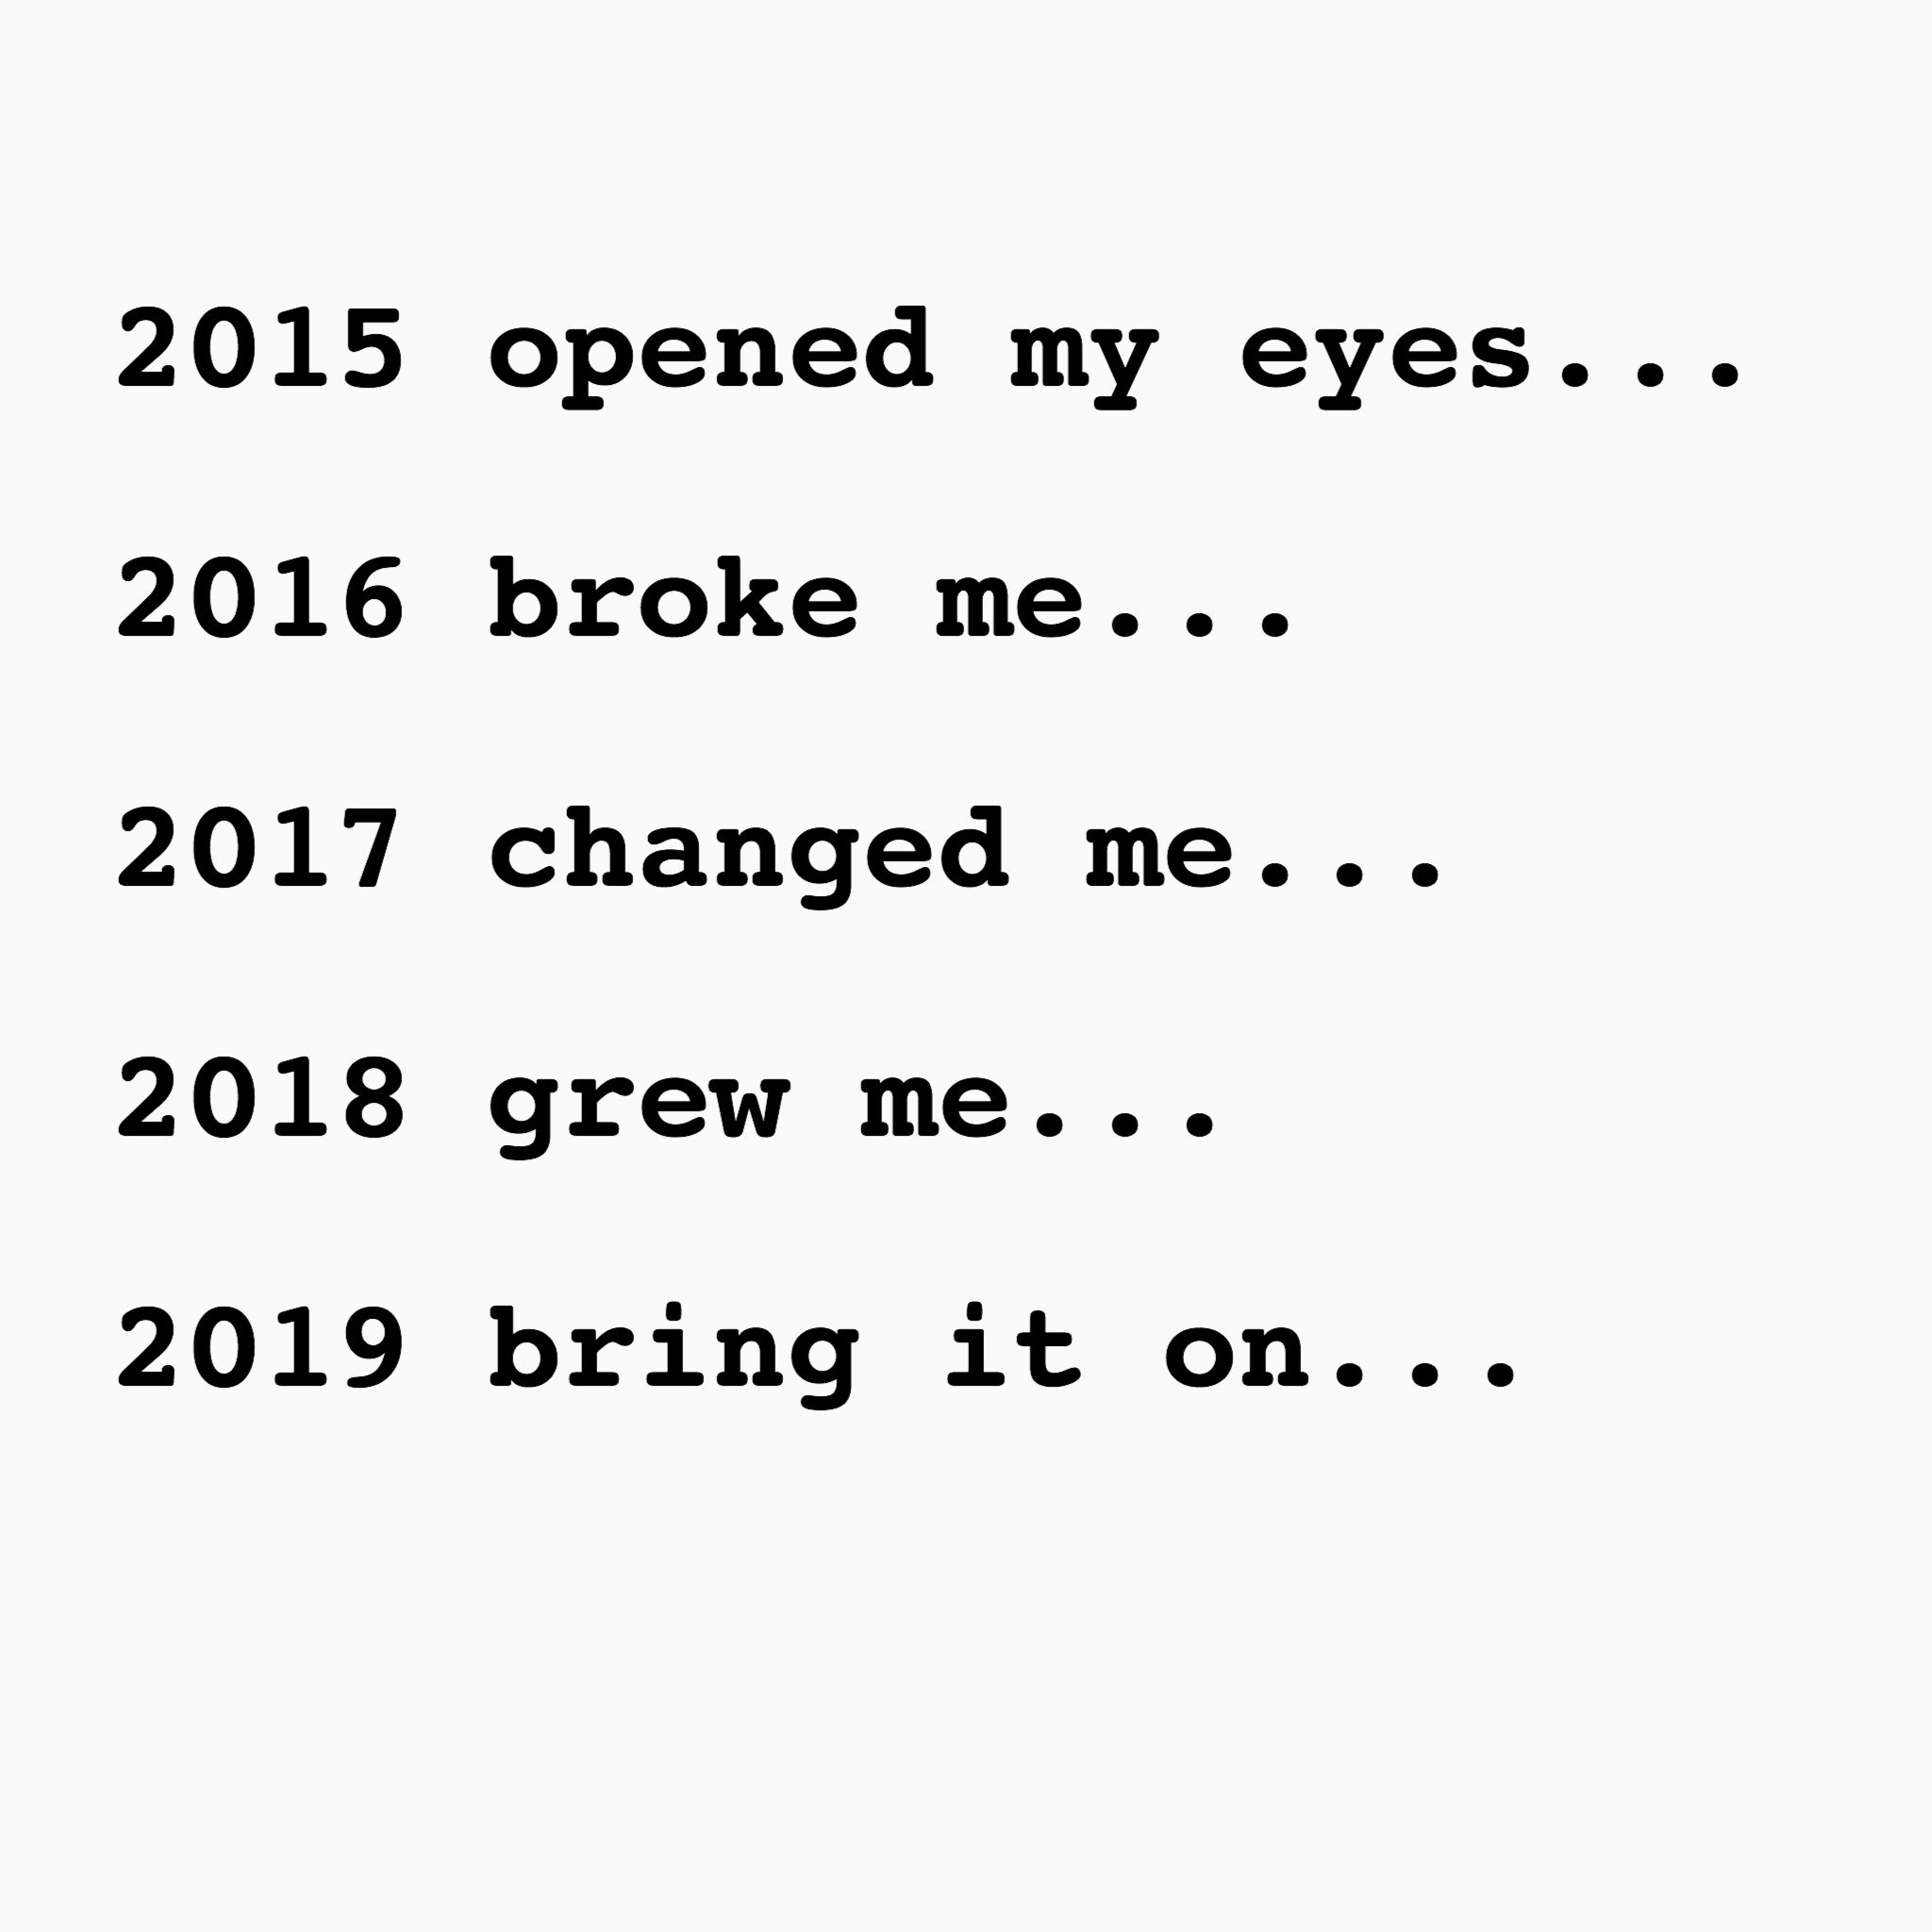 2019 I'm coming for you💪 goals newyear 2019